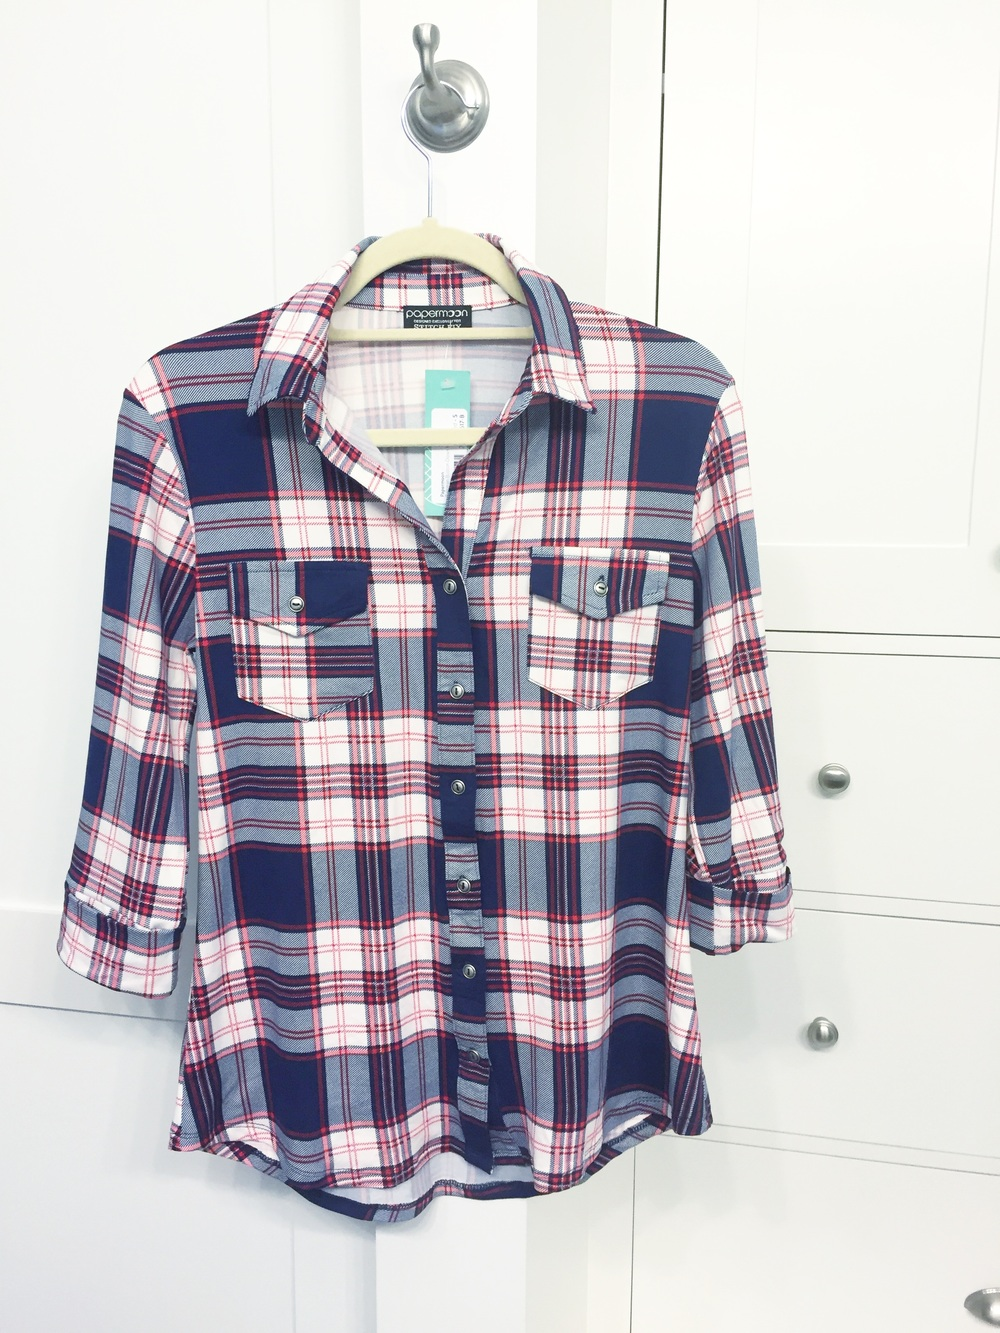 $54 plaid shirt - This pop of plaid initially had me really excited, but I was disappointed when I pulled it out of the box. I love cotton and flannel plaid shirts, but this one is polyester. I am more of a gold girl, so I don't love the silver buttons. The pockets also give this a more of a Western flair than I'm comfortable with. RETURN